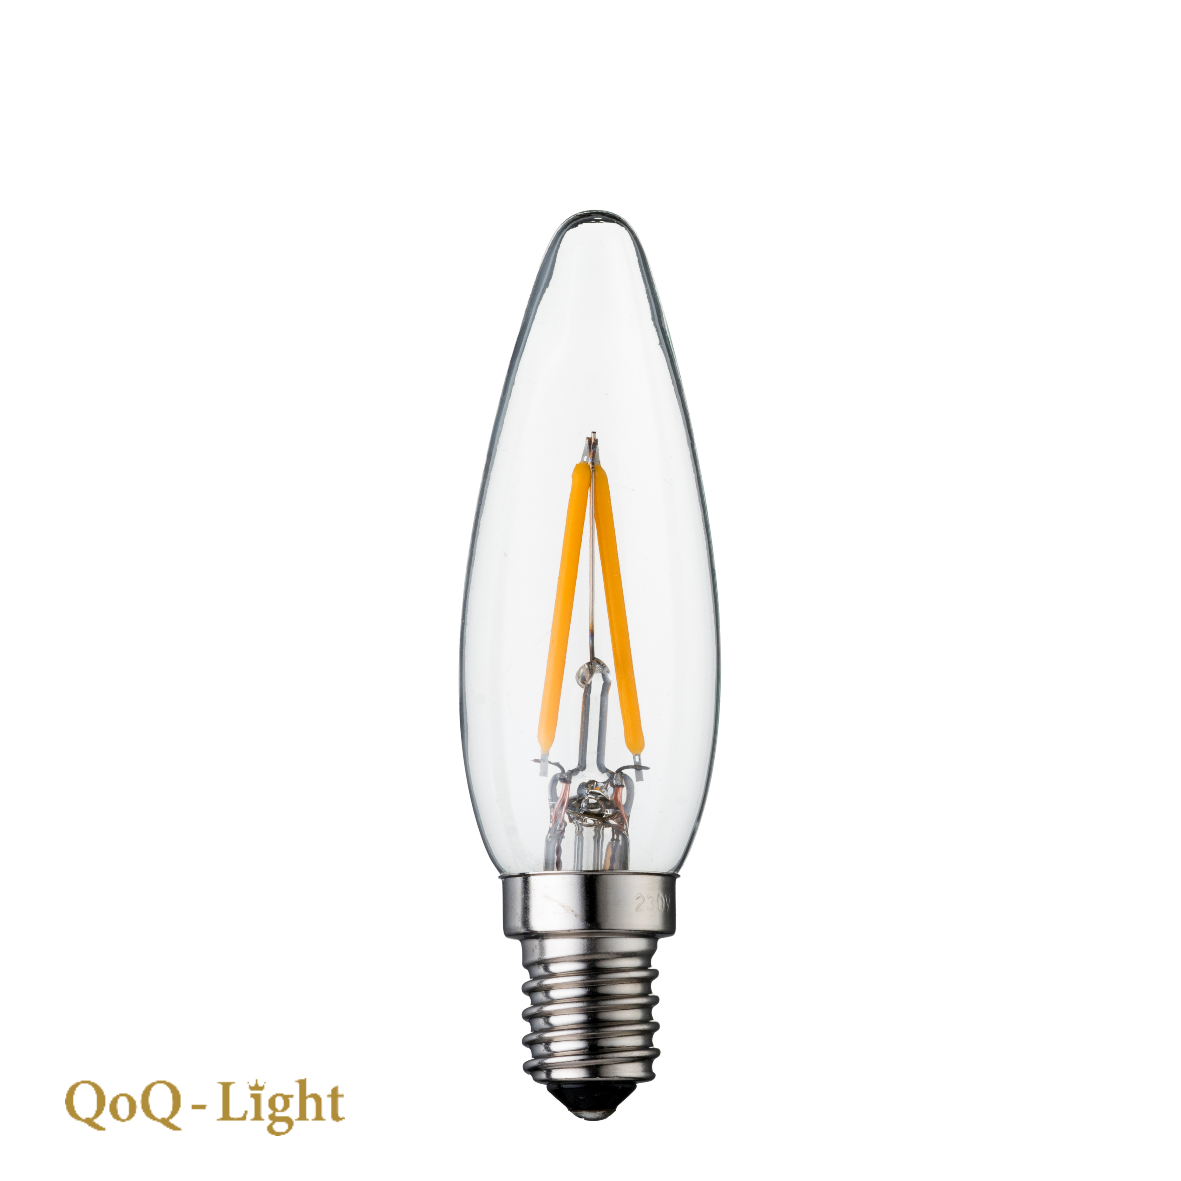 QOQ-Light PaleisKaars Led C26 2 watt Warmwit, lang